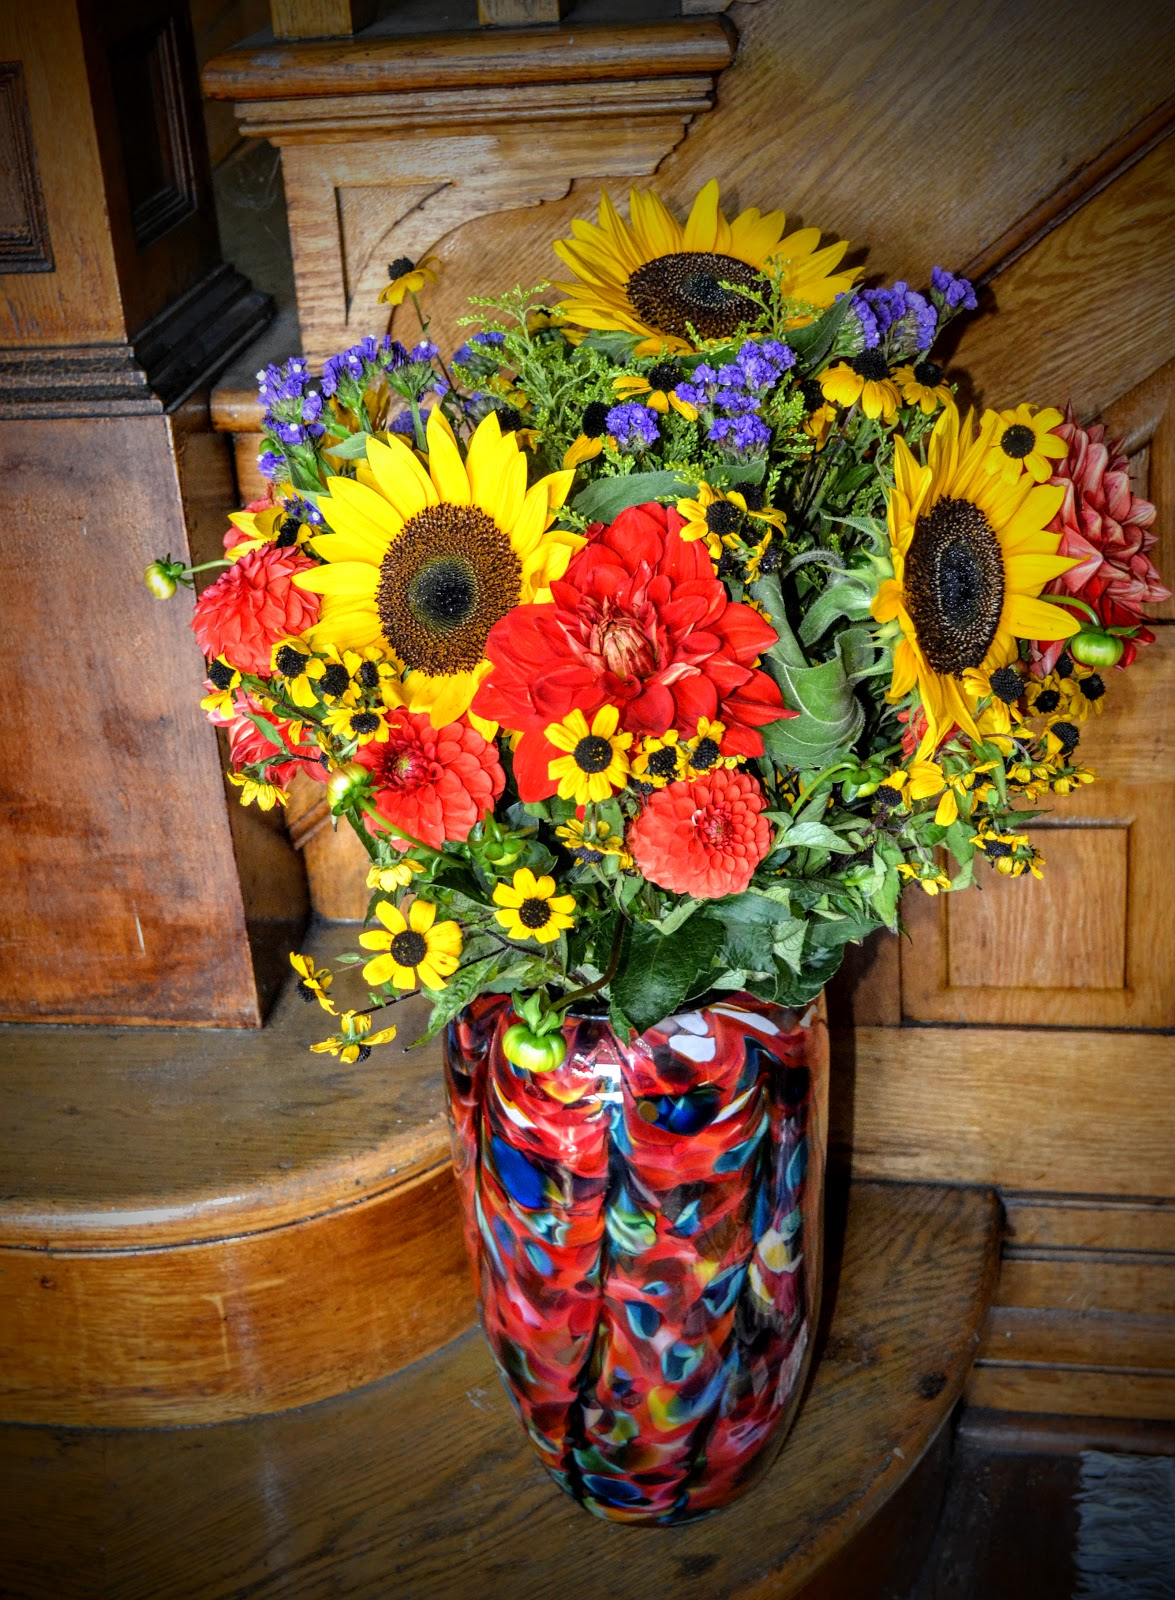 The Outlaw Gardener: In A Vase On Monday